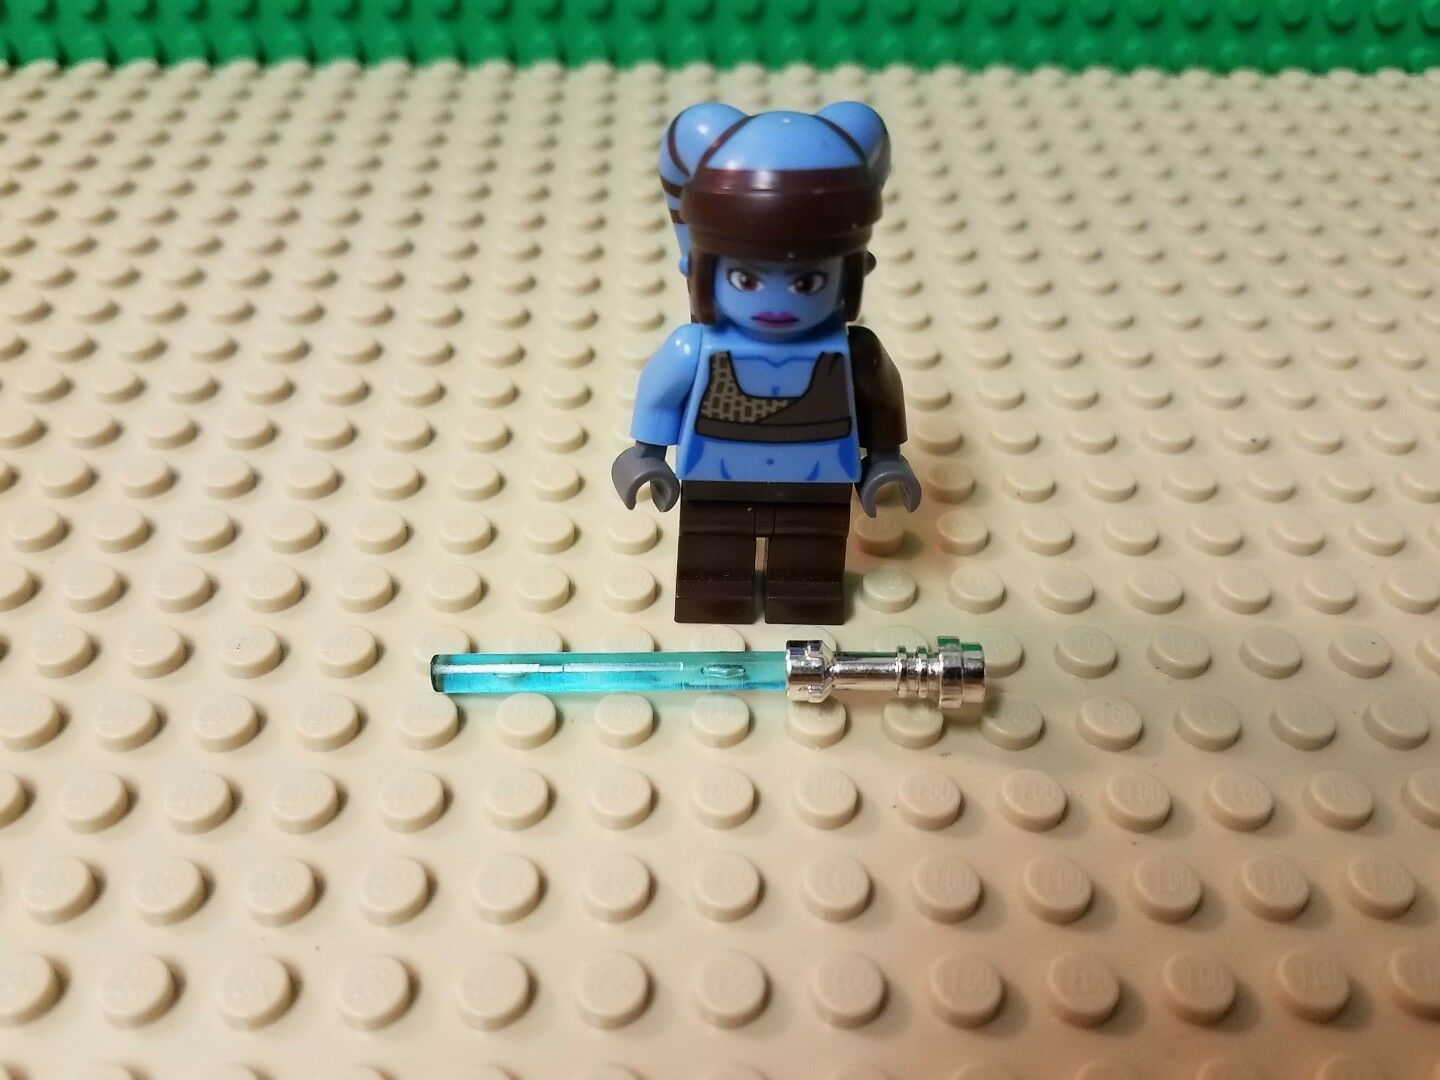 LEGO STAR WARS AAYLA SECURA JEDI MINIFIGURE NEW FROM FROM FROM SEALED RETIRED SET 8098 6a51cc